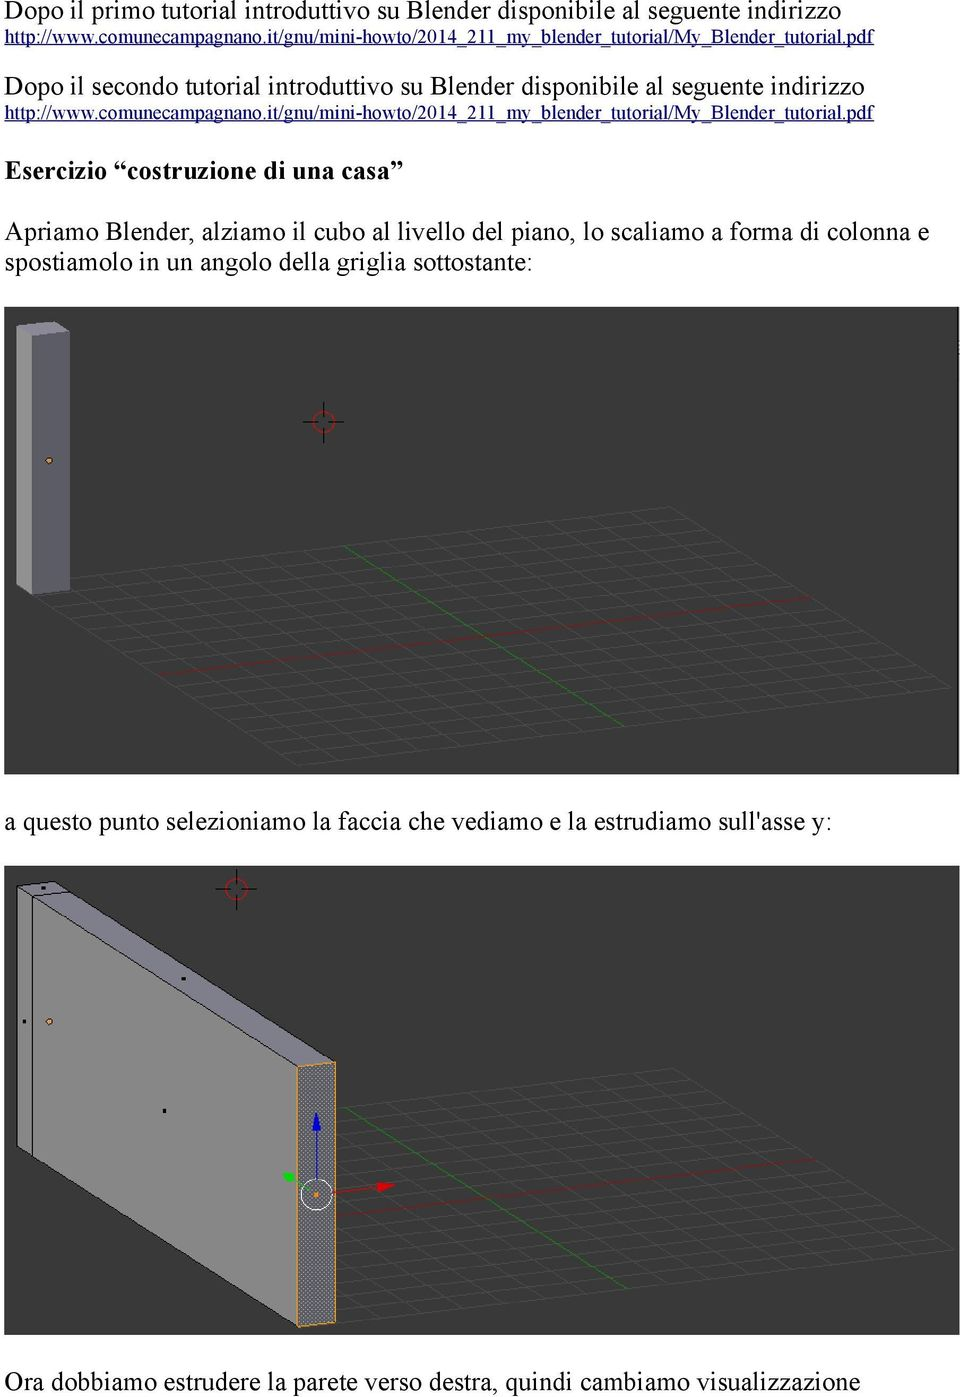 comunecampagnano.it/gnu/mini-howto/2014_211_my_blender_tutorial/my_blender_tutorial.